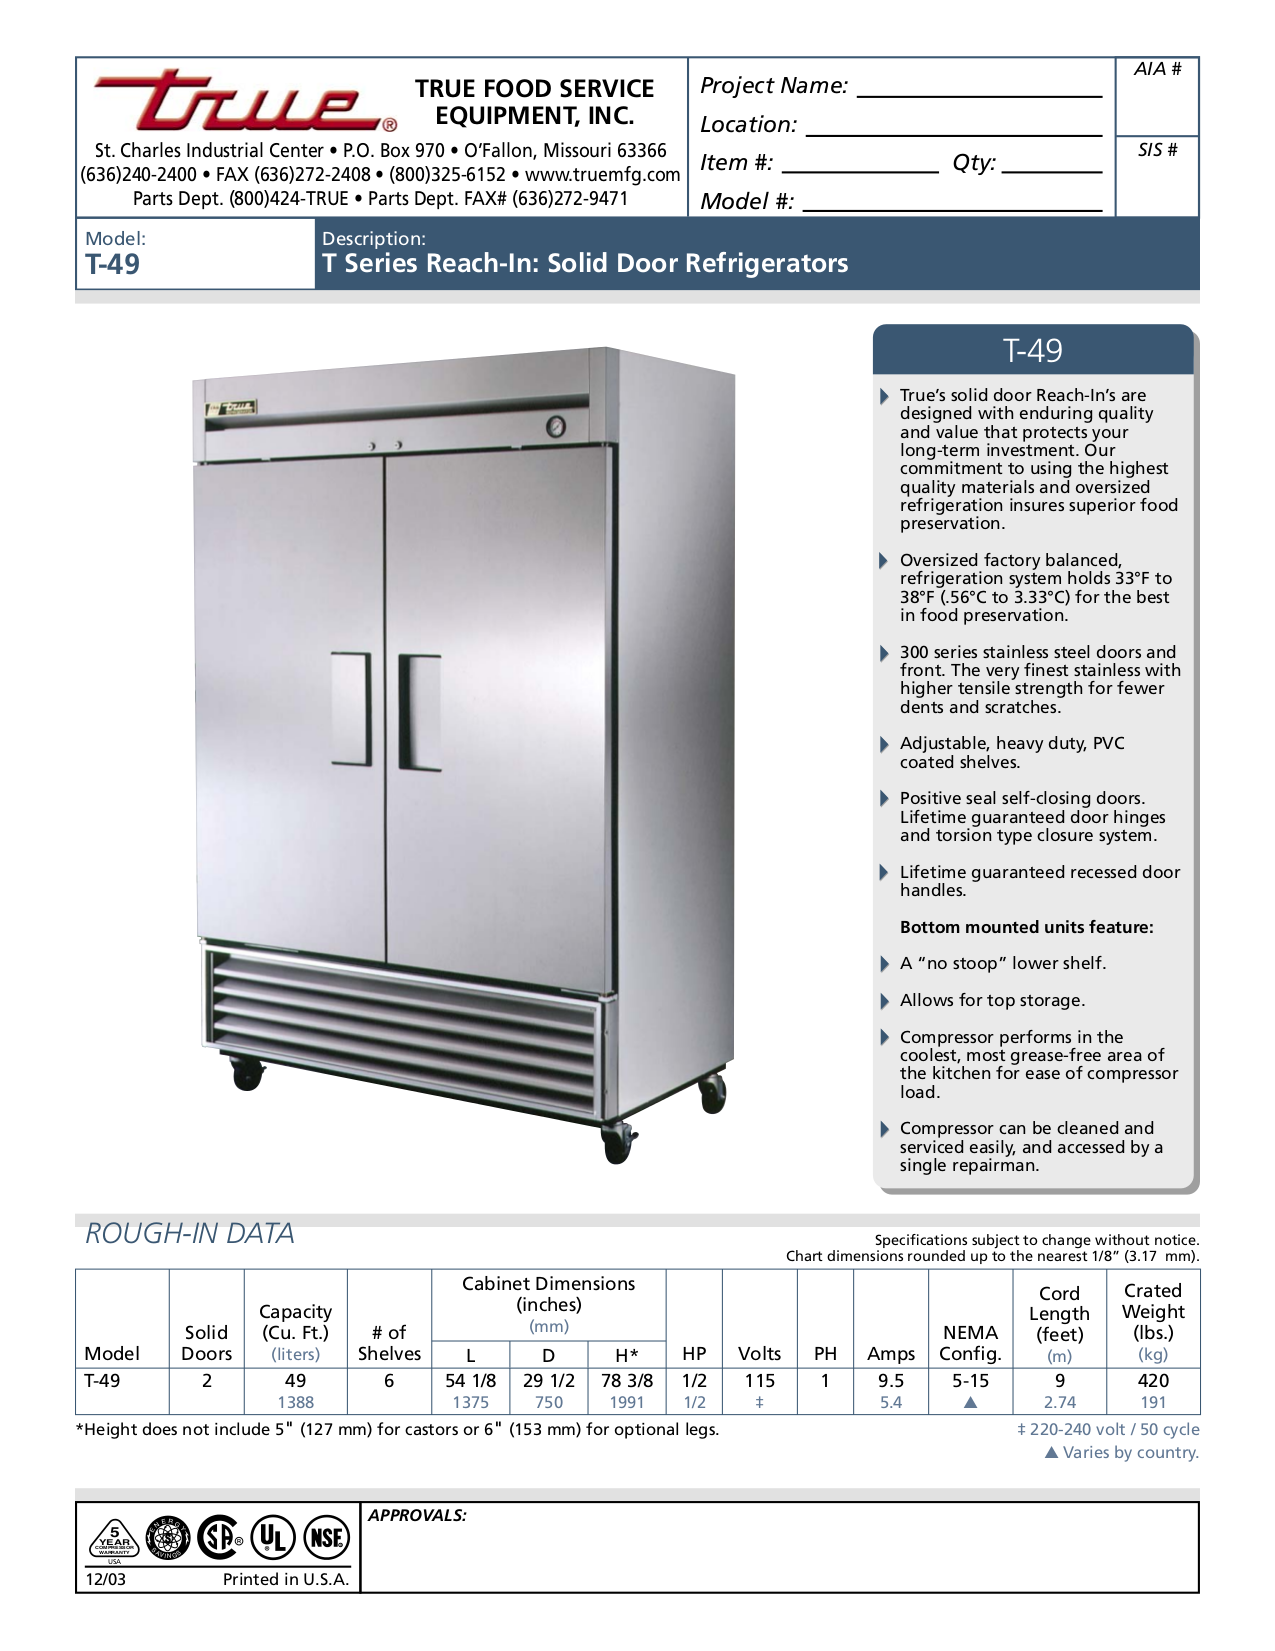 True Refrigeration Schematic Detailed Wiring Diagrams Bonn Commercial Freezer Diagram Download Free Pdf For T 49 4 Refrigerator Manual Cooler